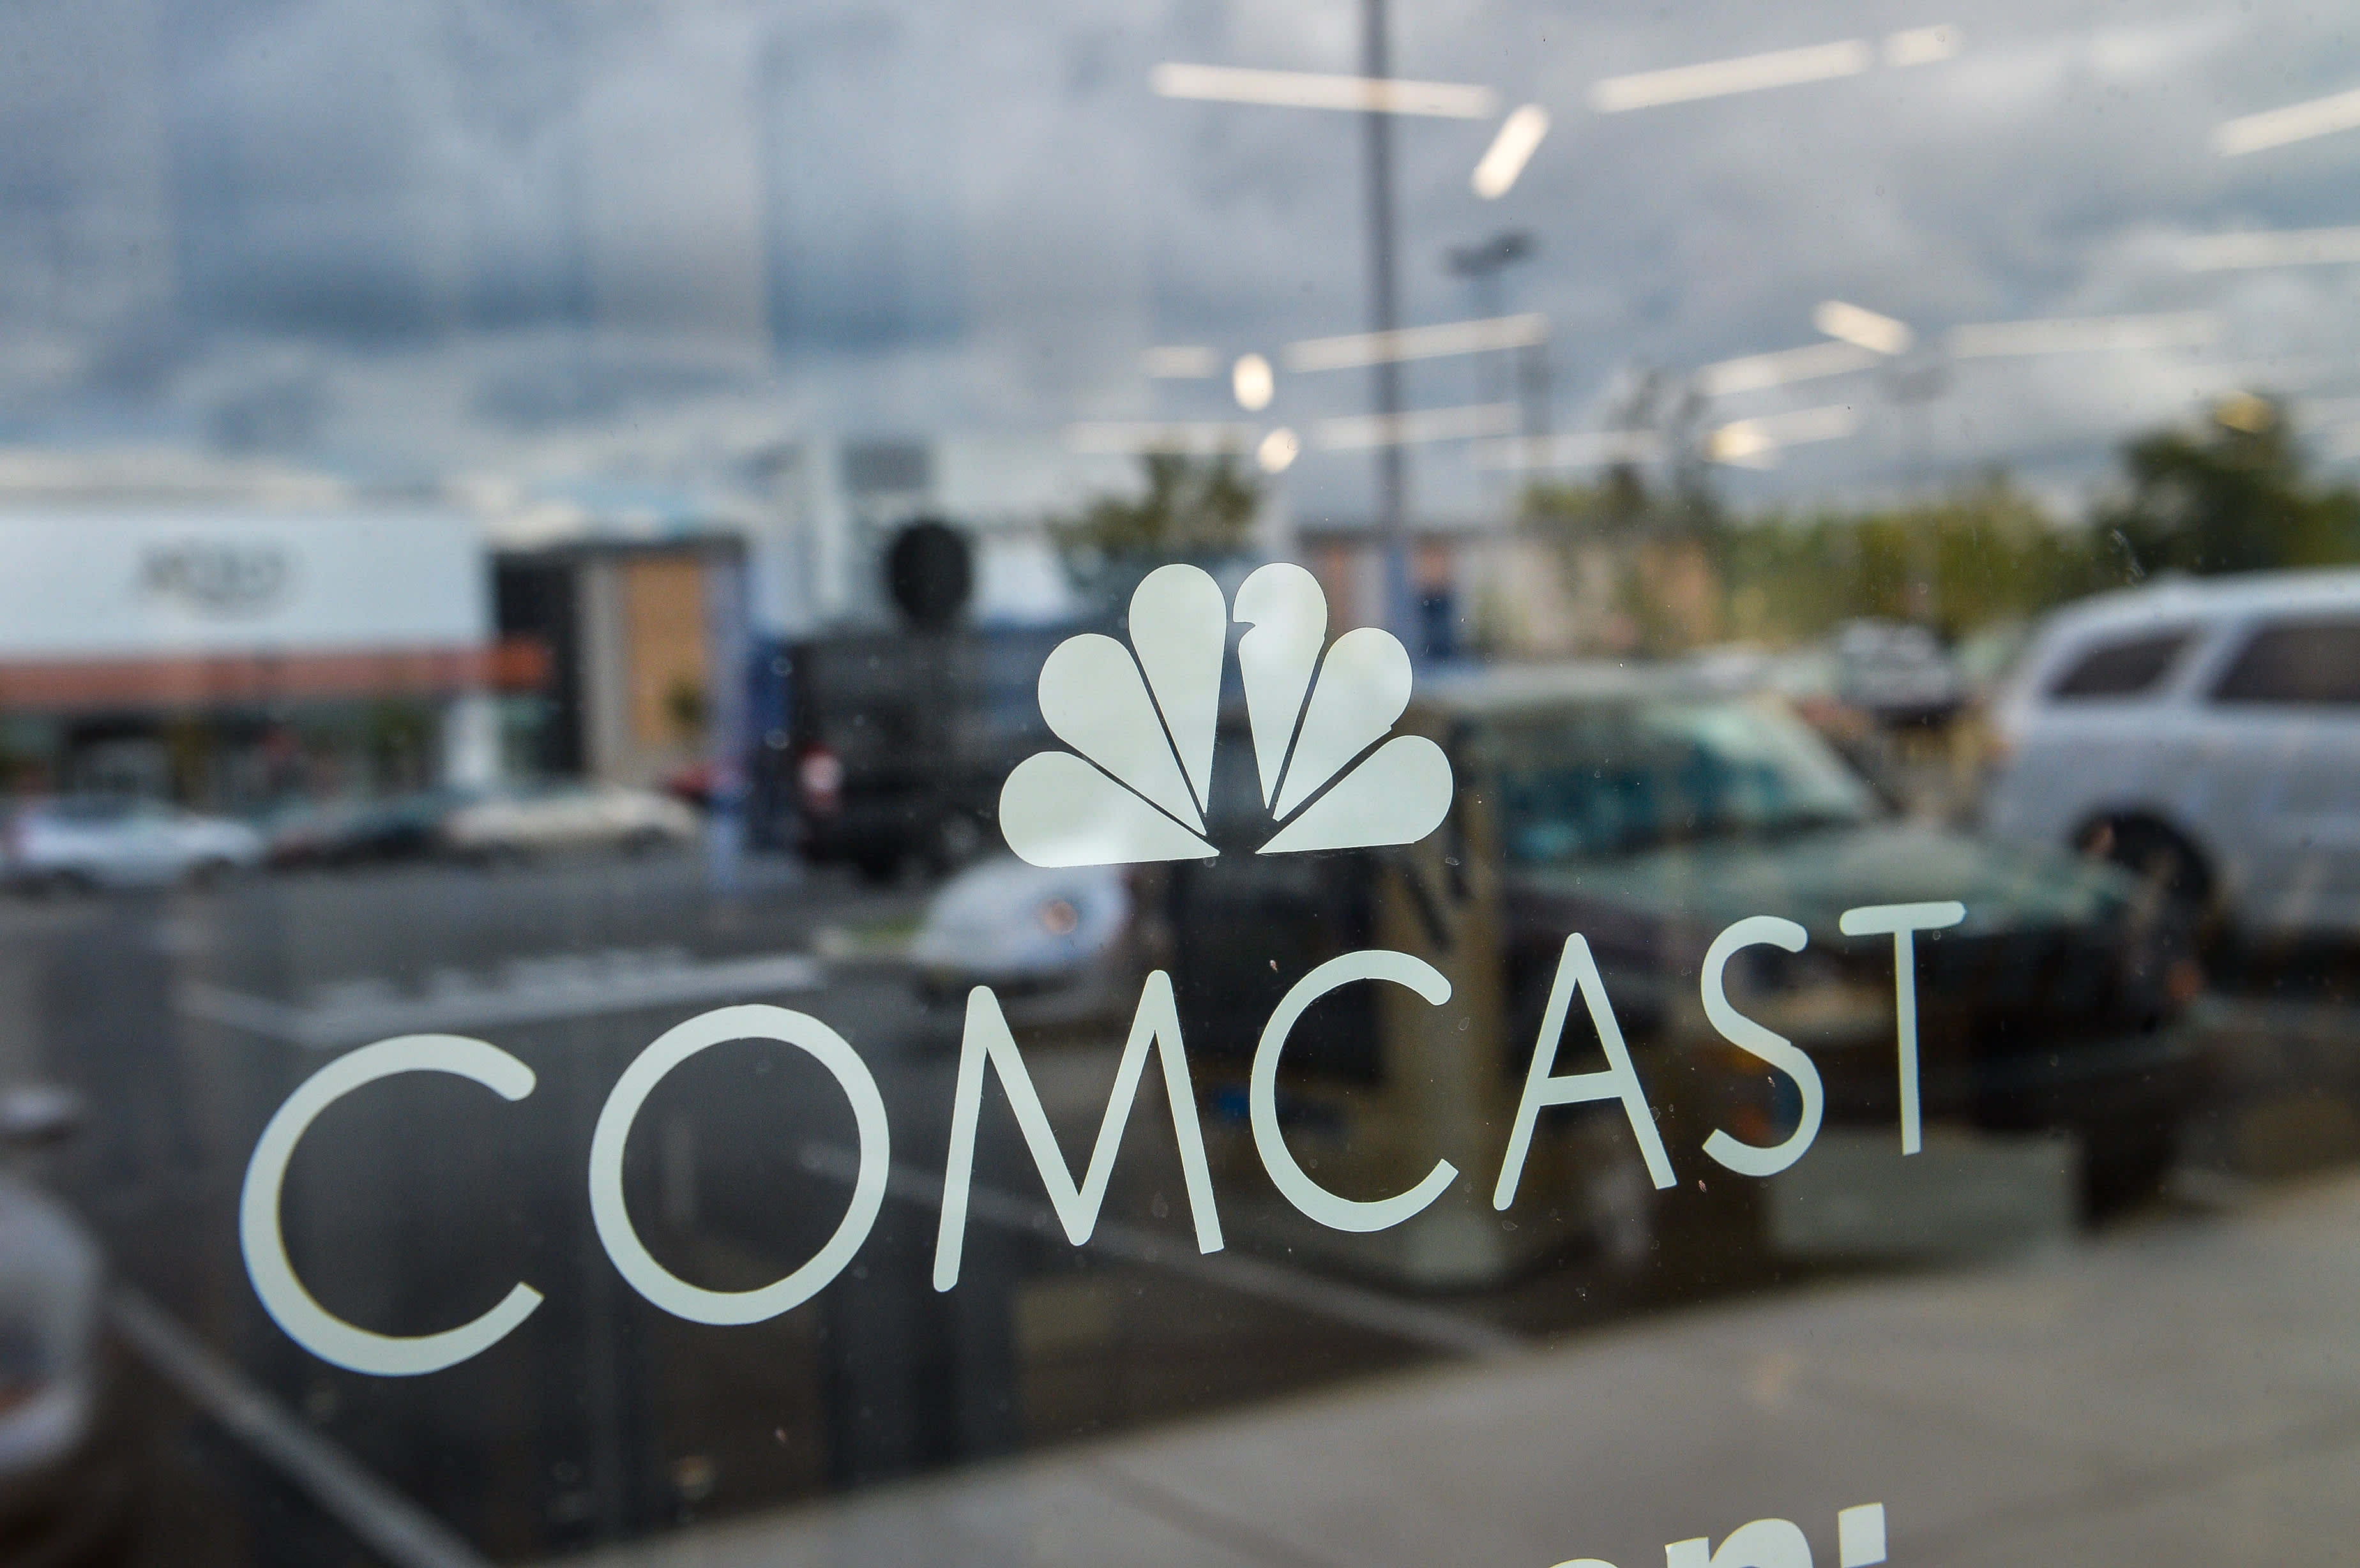 Comcast launches accelerator for sports start-ups that could give it a leg up on new technology